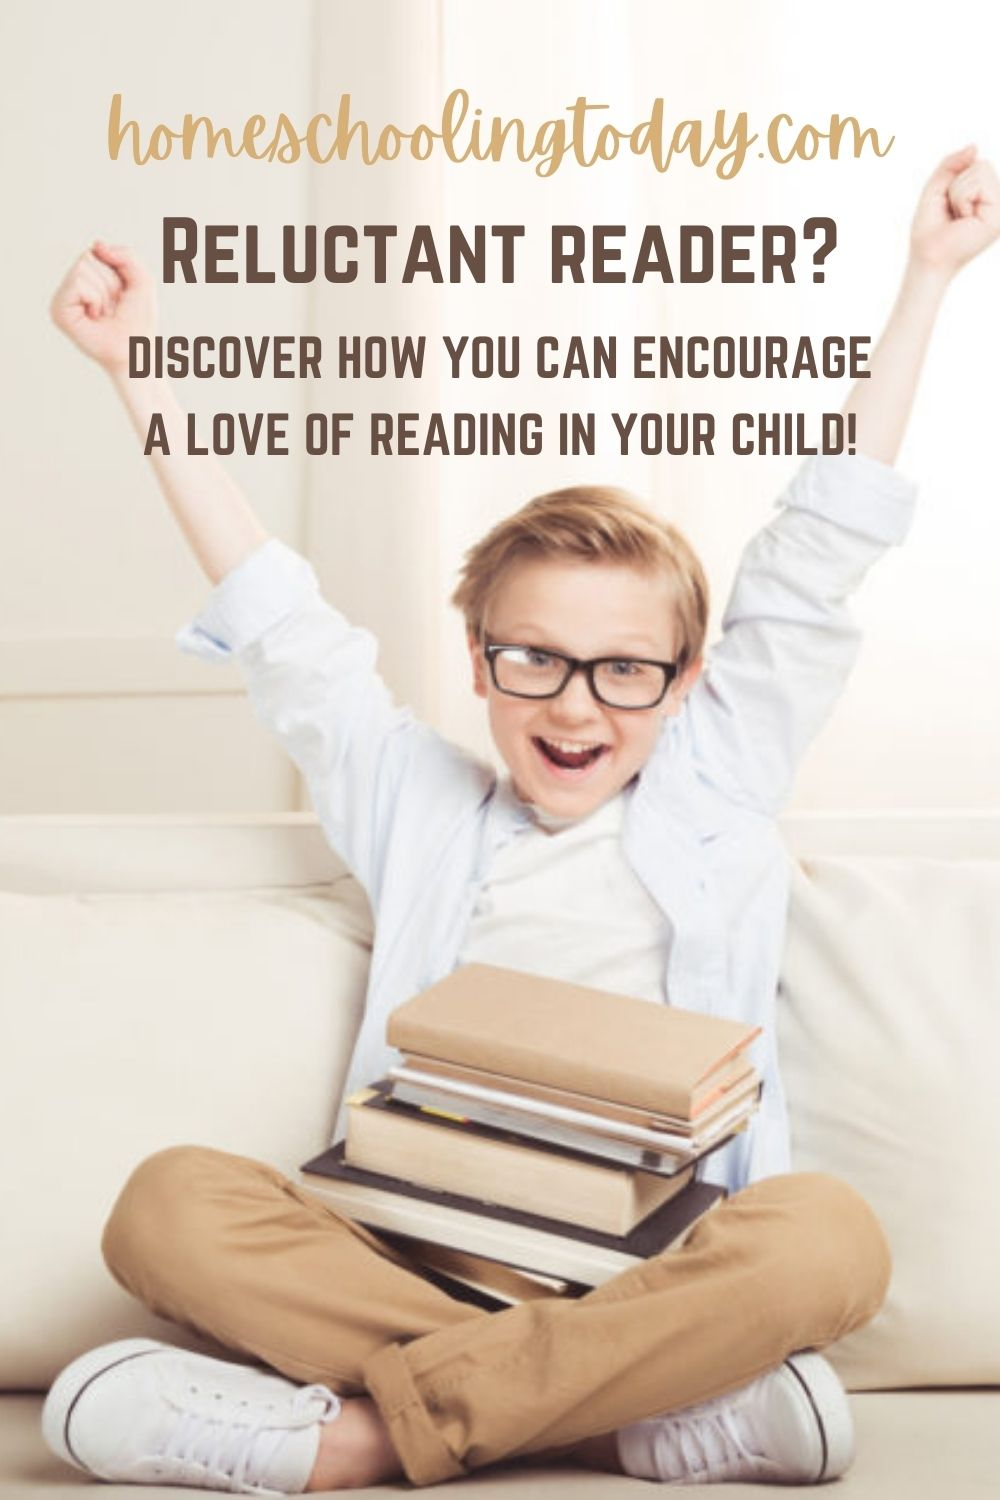 Pinterest image boy excited about reading